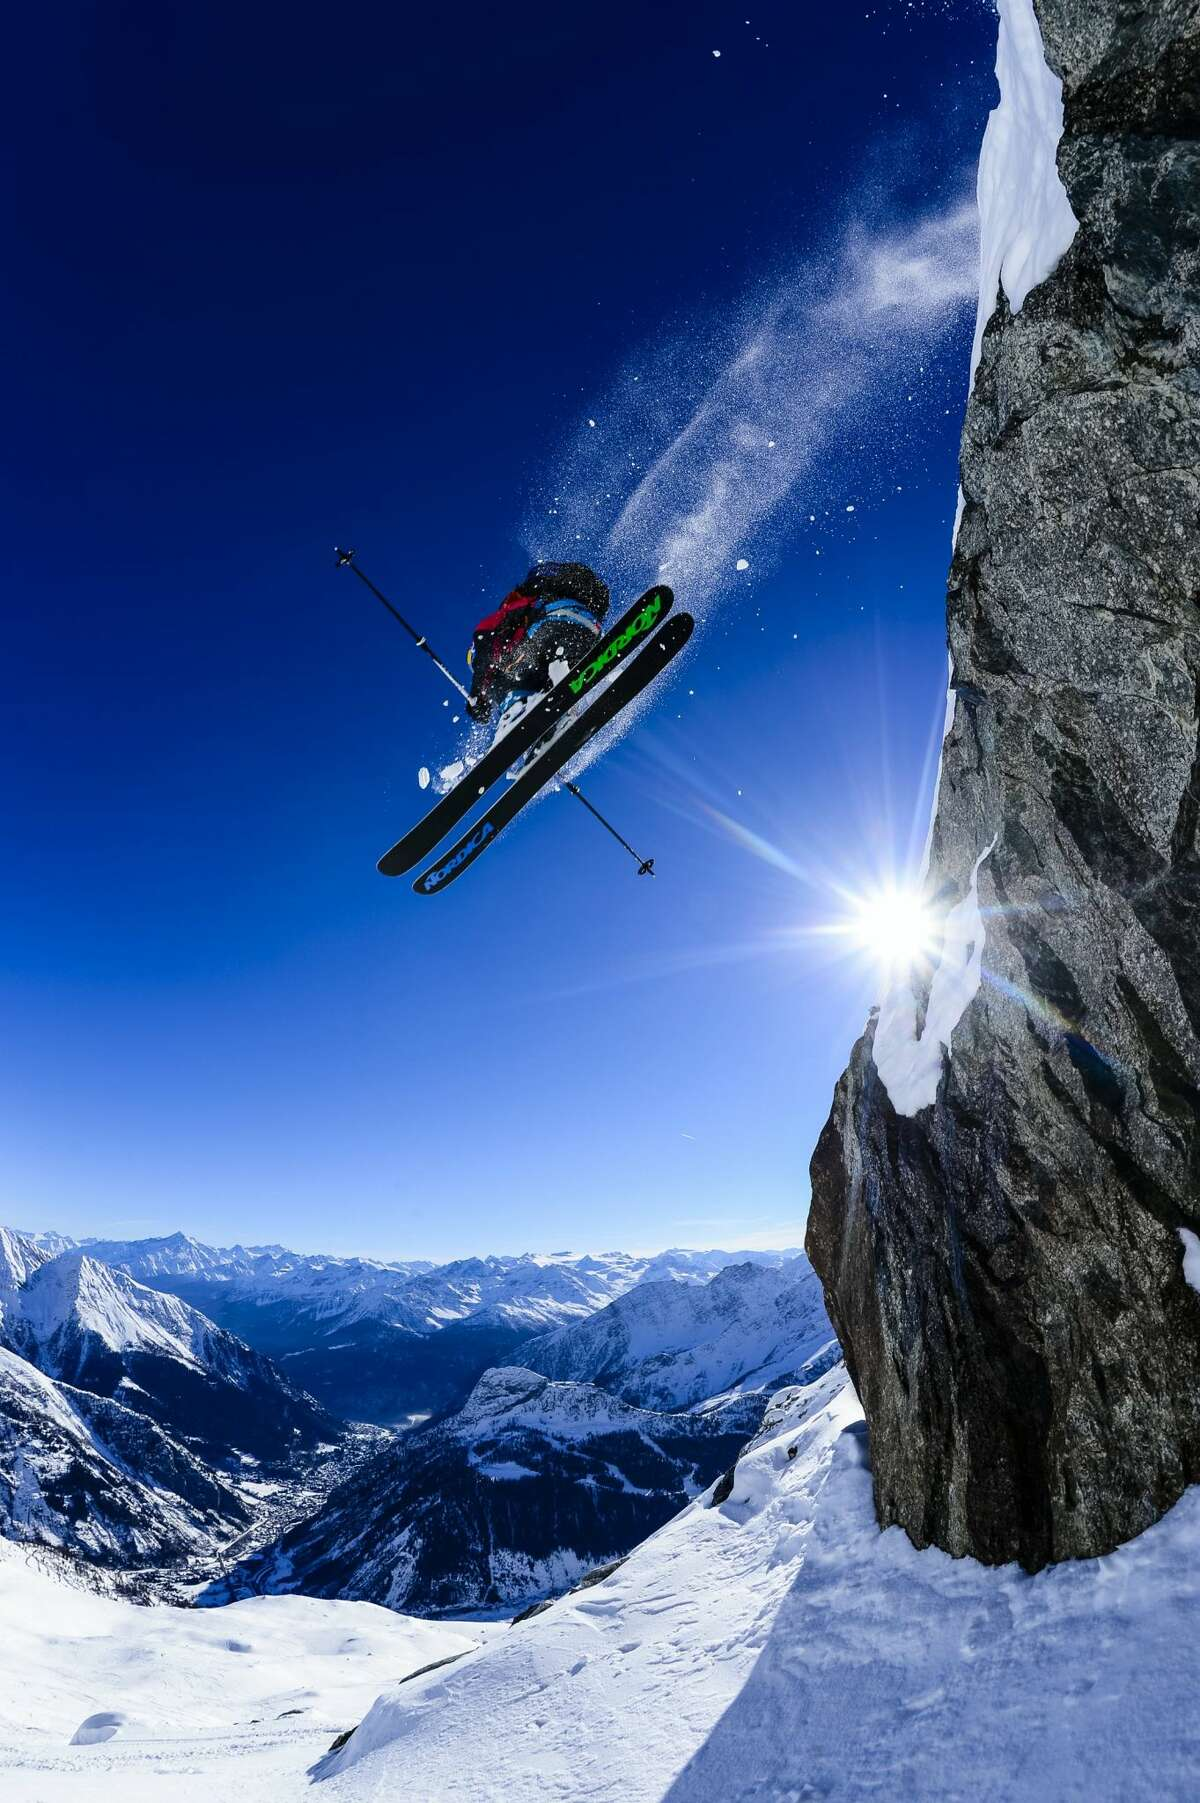 Matilda Rapaport was one of the world's best female extreme skiers.